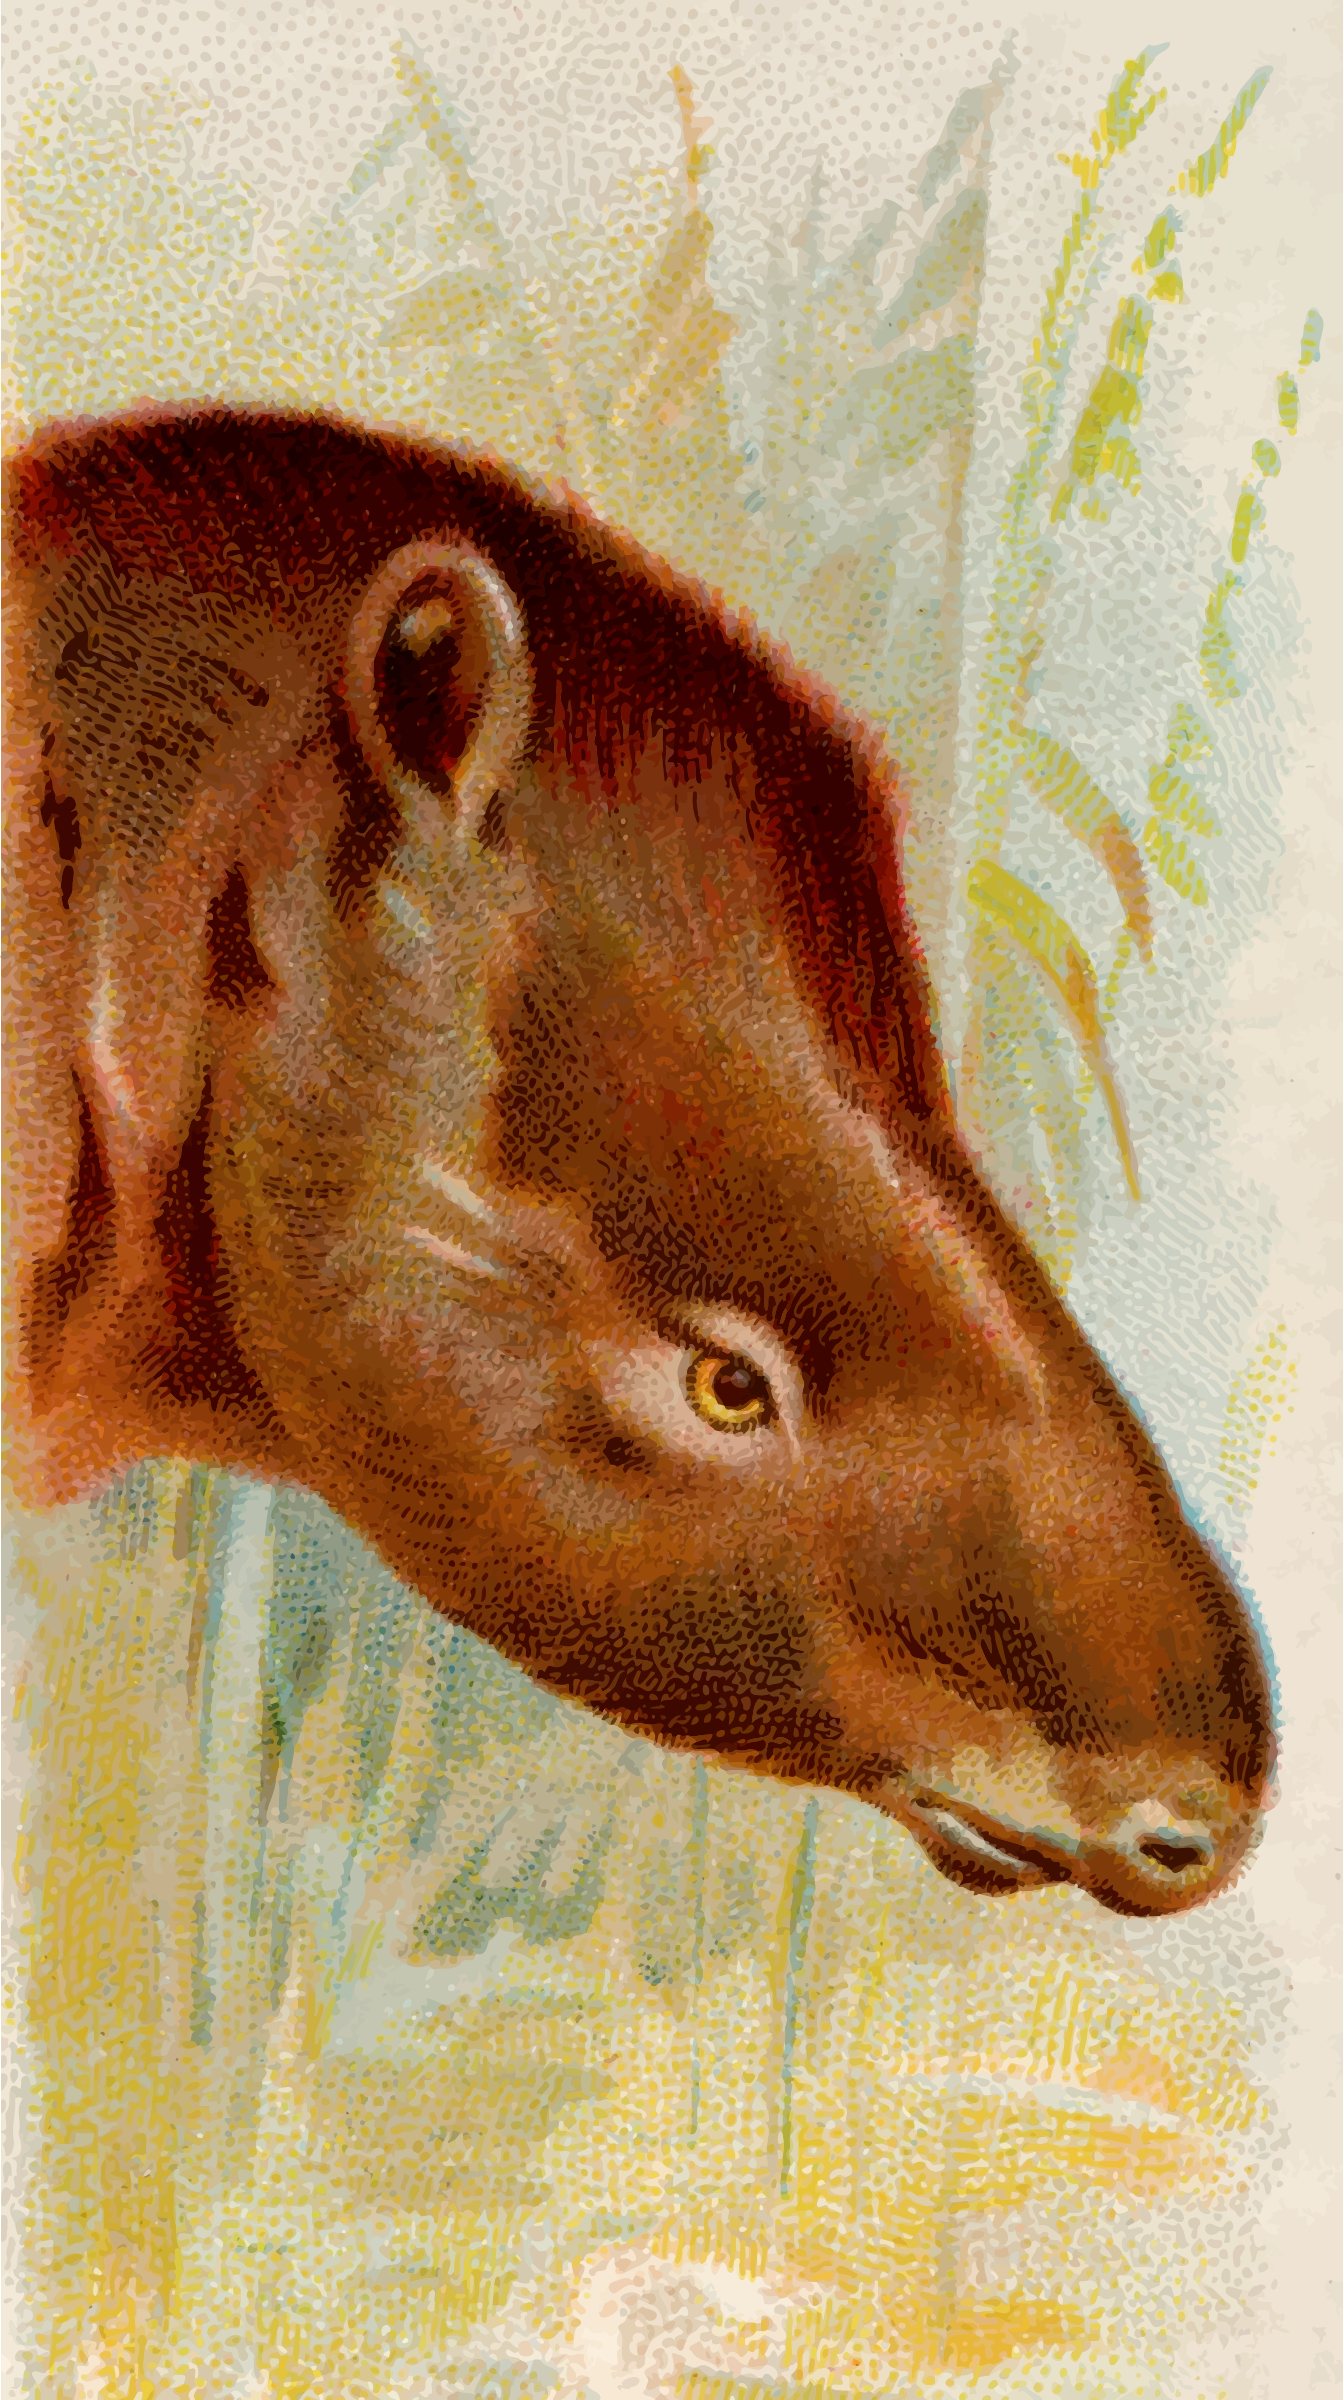 Cigarette card - Tapir by Firkin